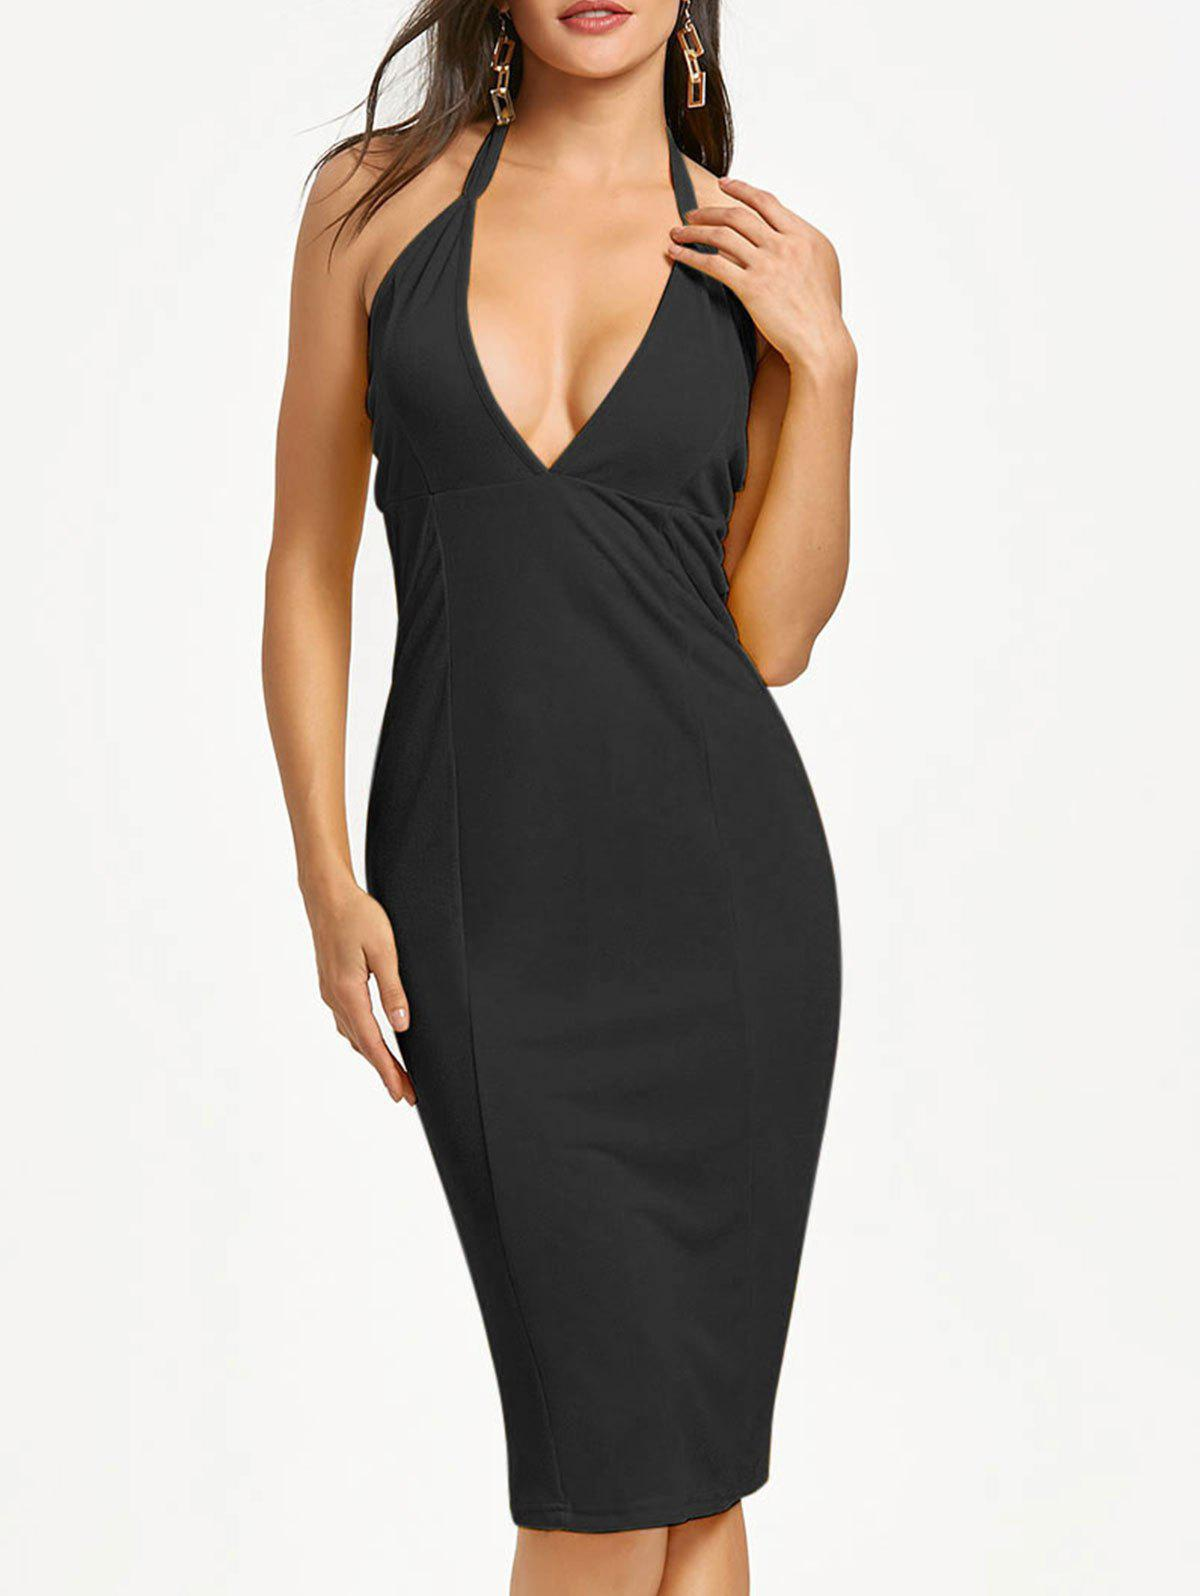 Cut Out Plunge Bodycon Dress v plunge cut out teddy